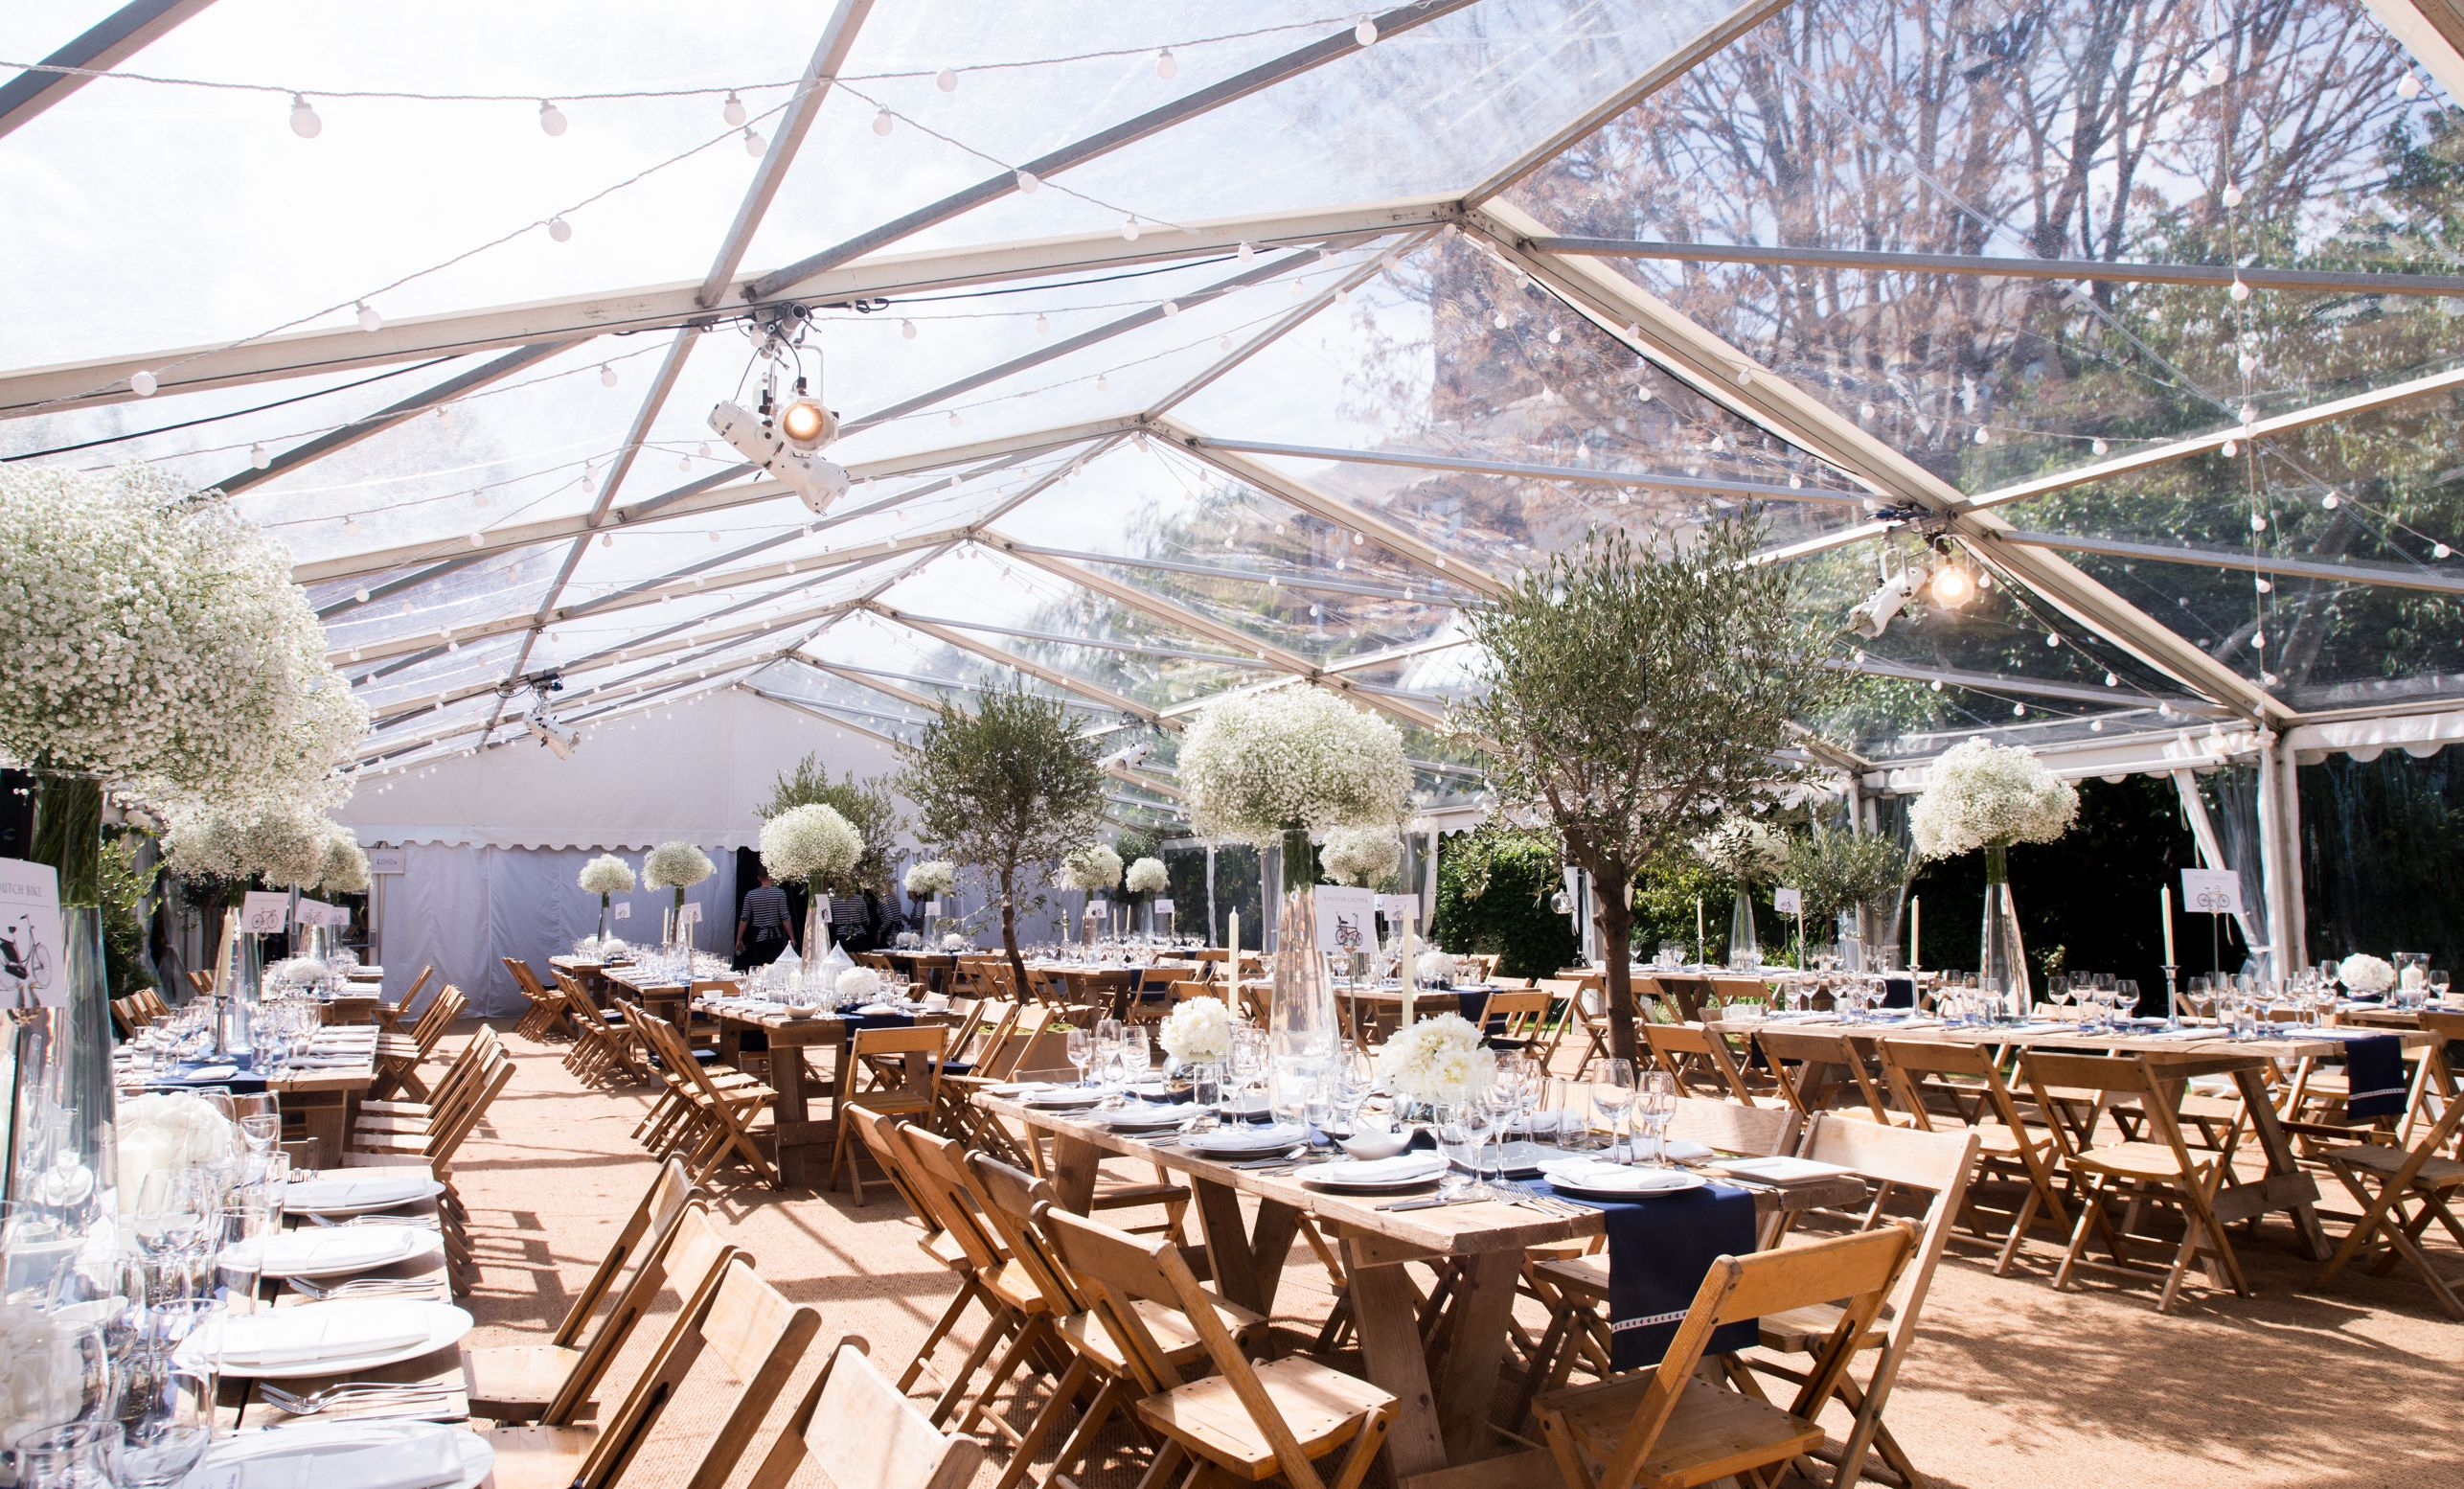 We regularly supply outdoor weddings to venues across the uk for wedding hire contact us for delivery in scotland including edinburgh glasgow perthshire